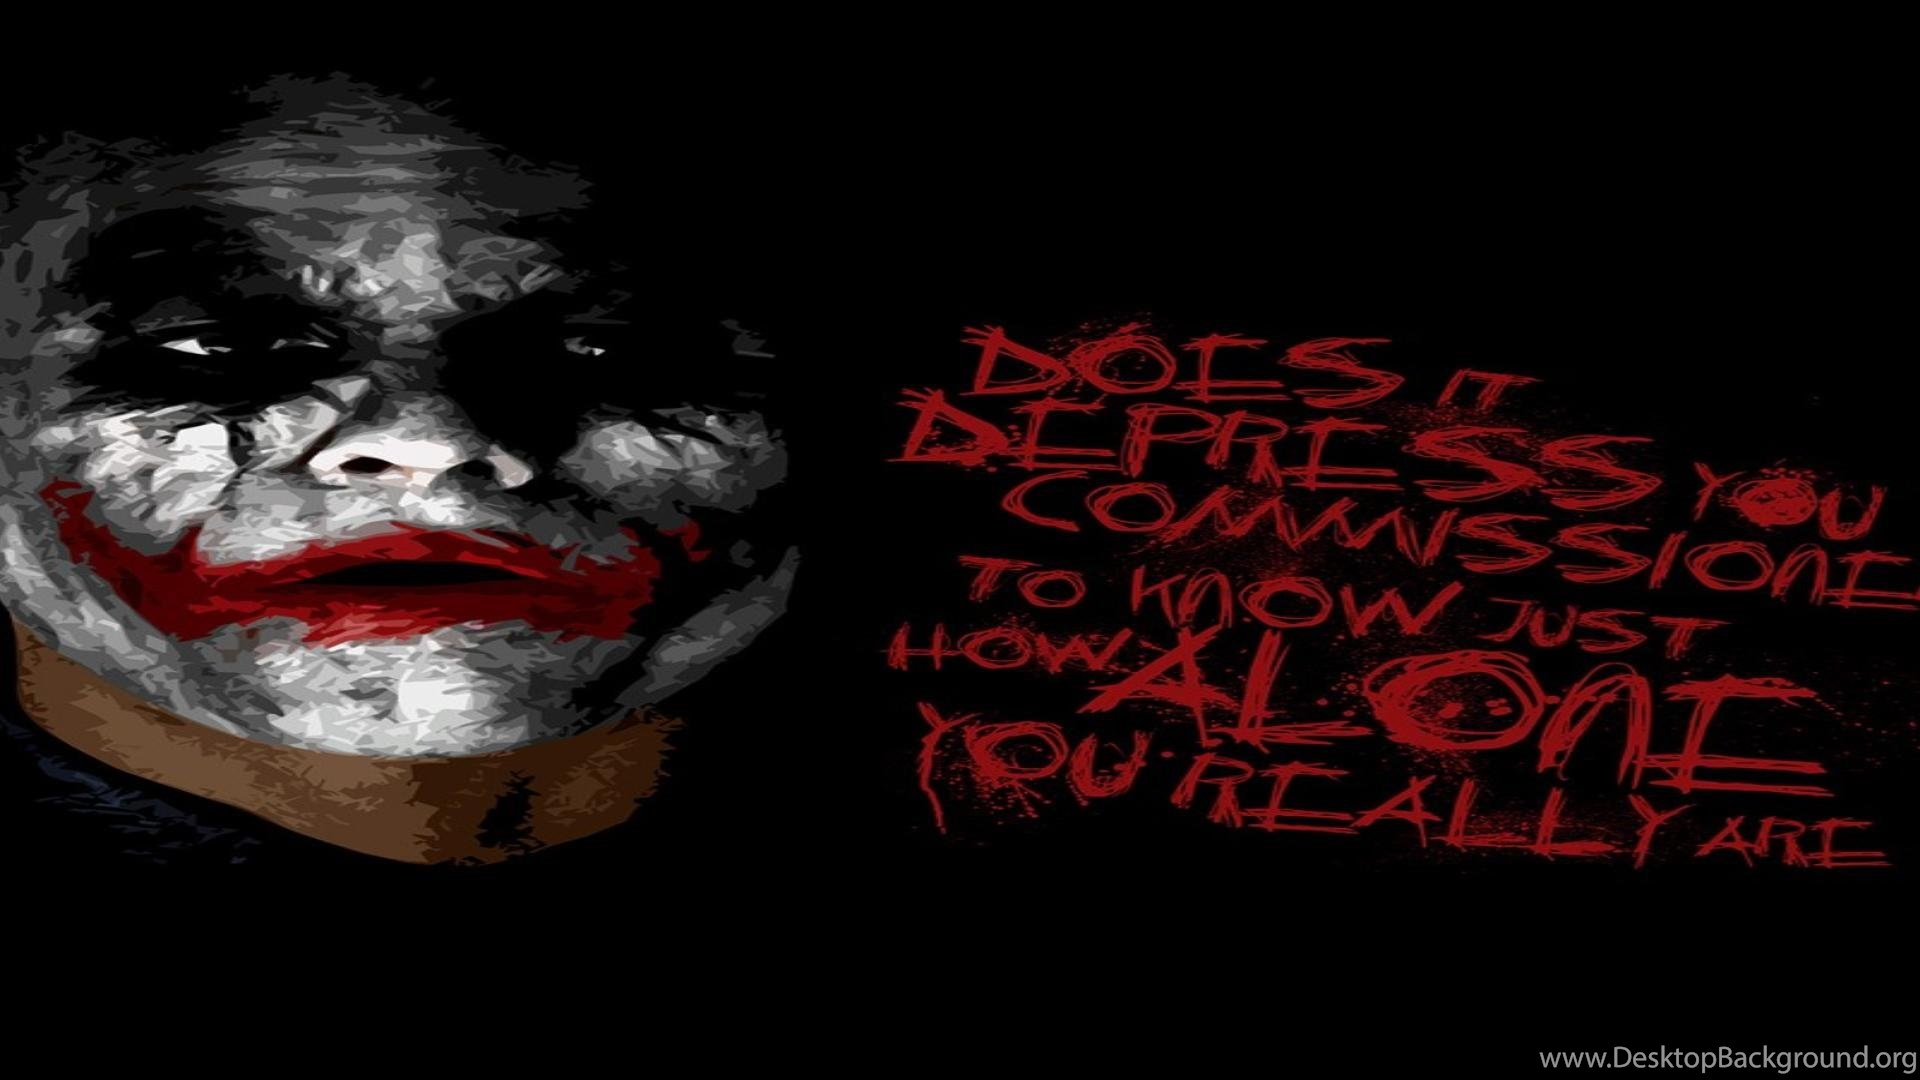 Download Joker HD Wallpapers In 3840x1080 : Widescreen : Mobile  Desktop Background